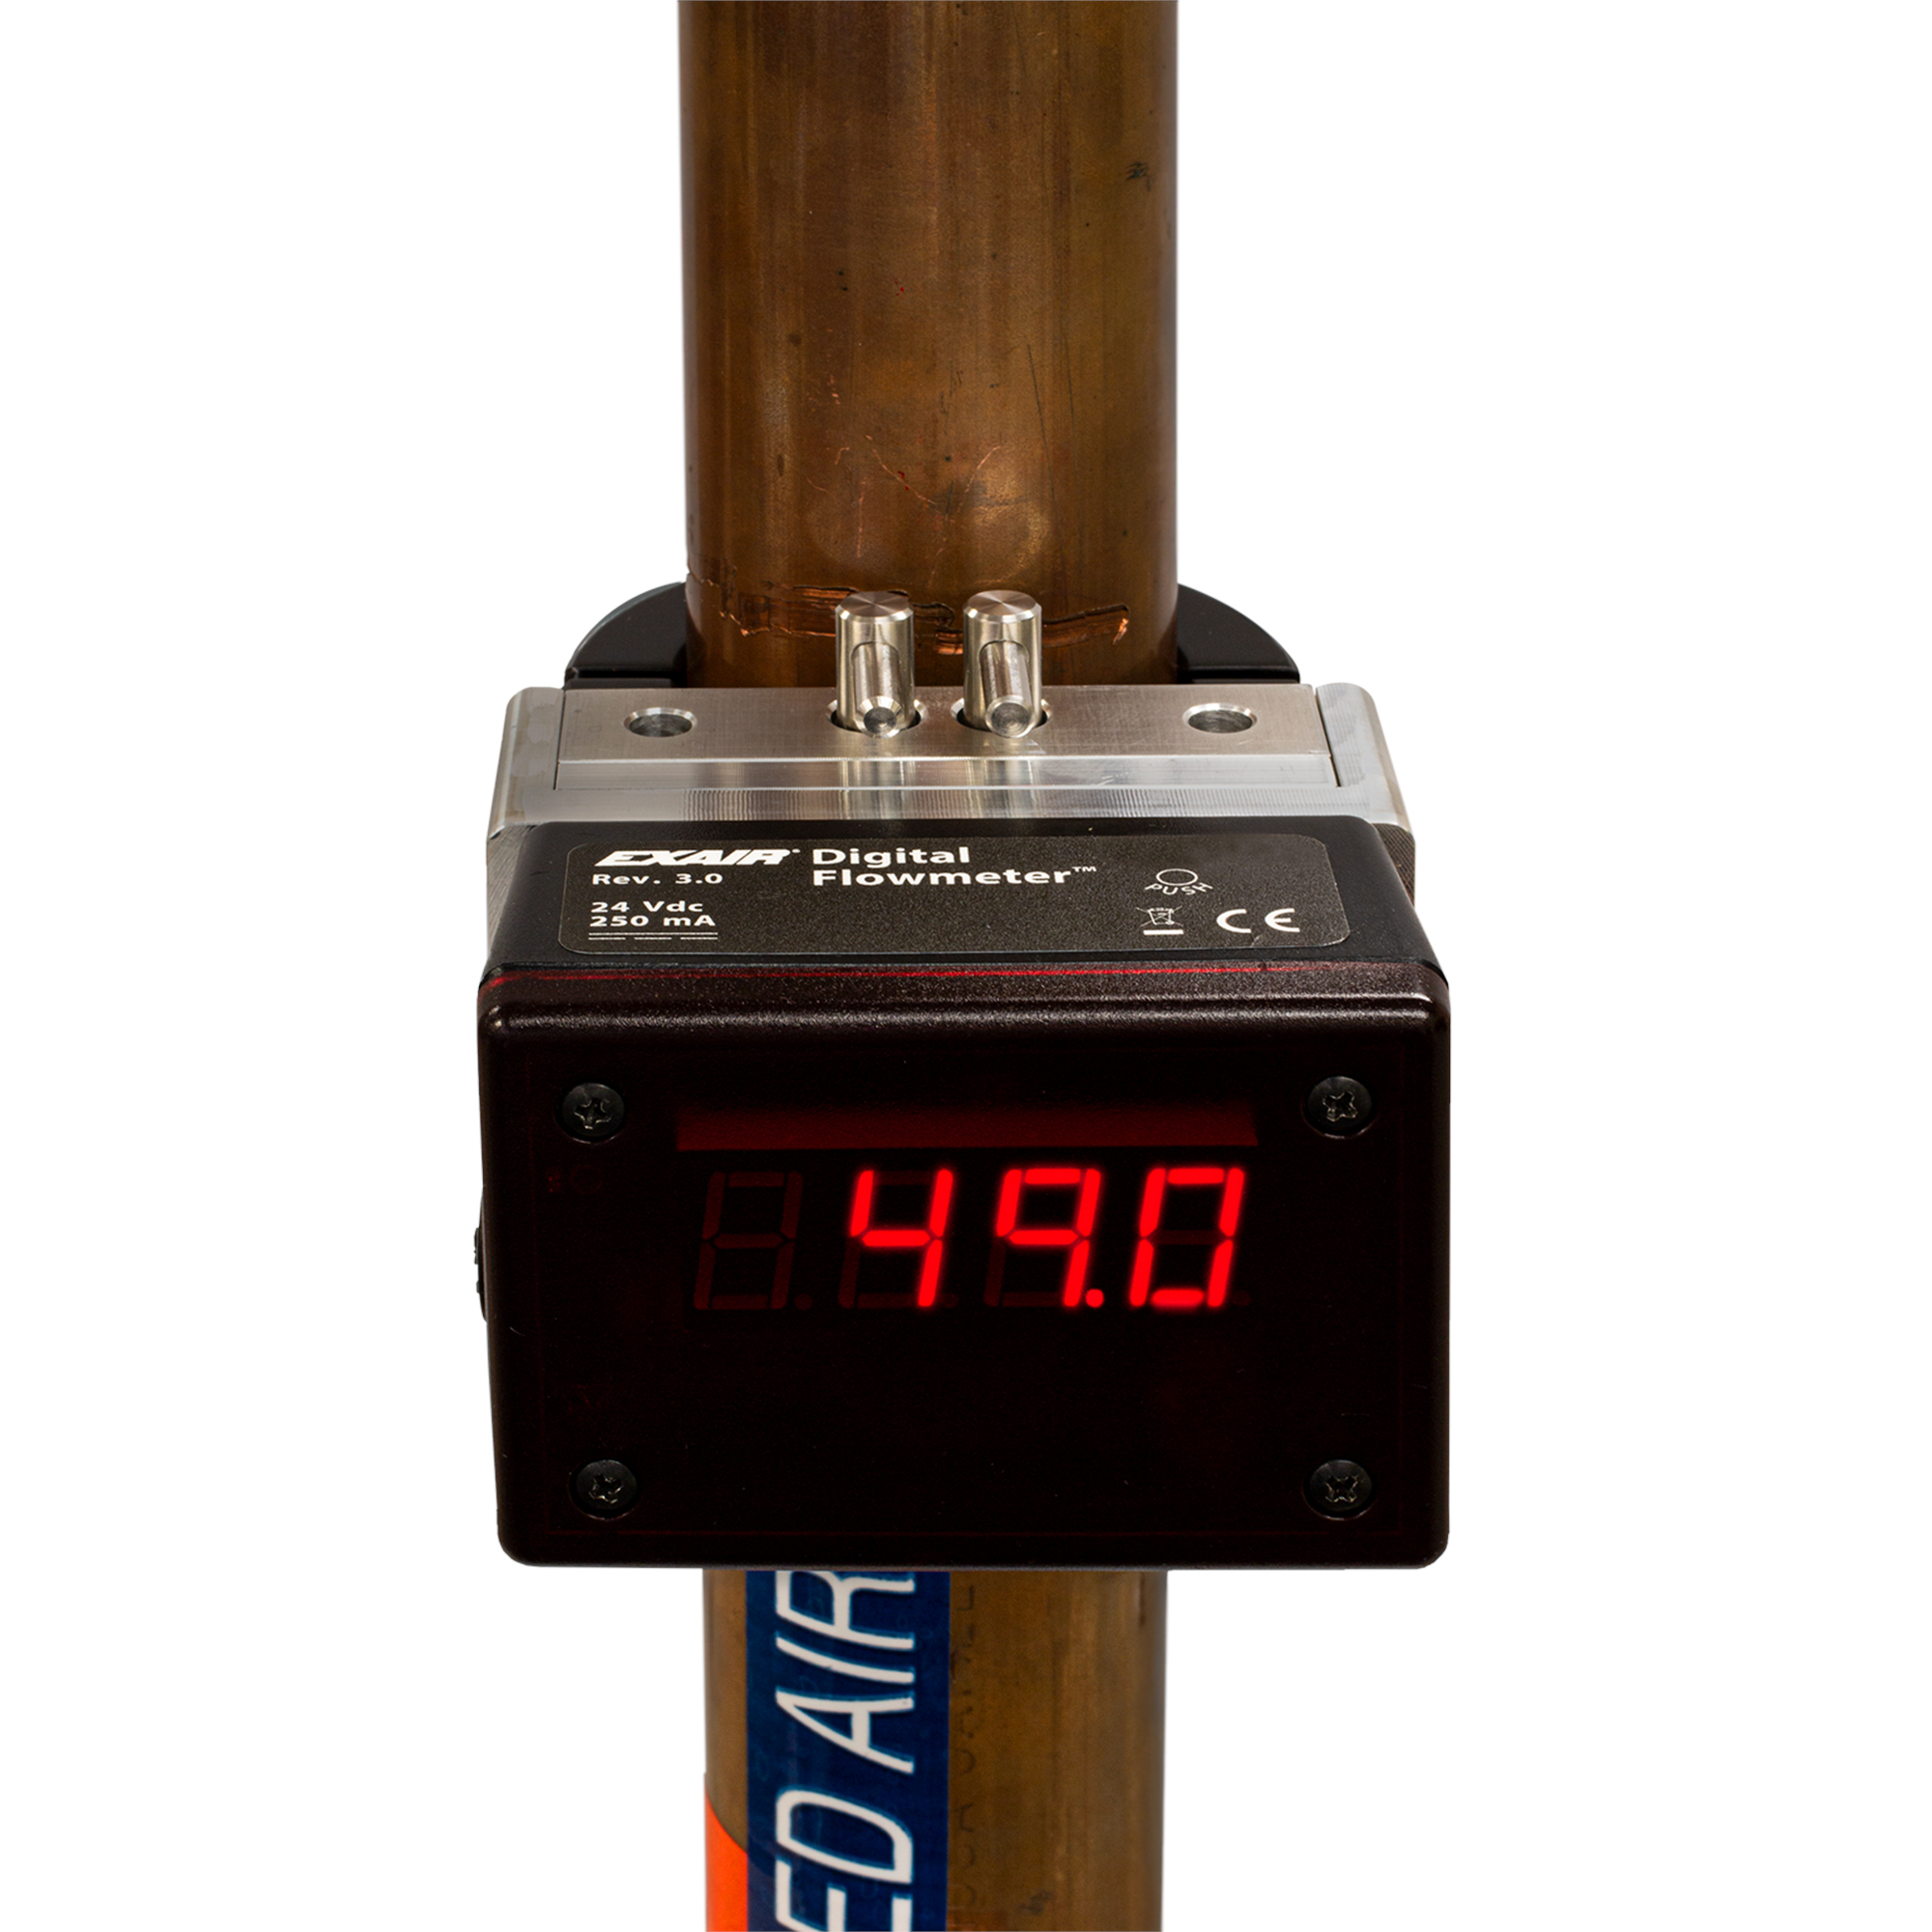 EXAIR's Digital Flowmeters are an important part of conserving compressed air.